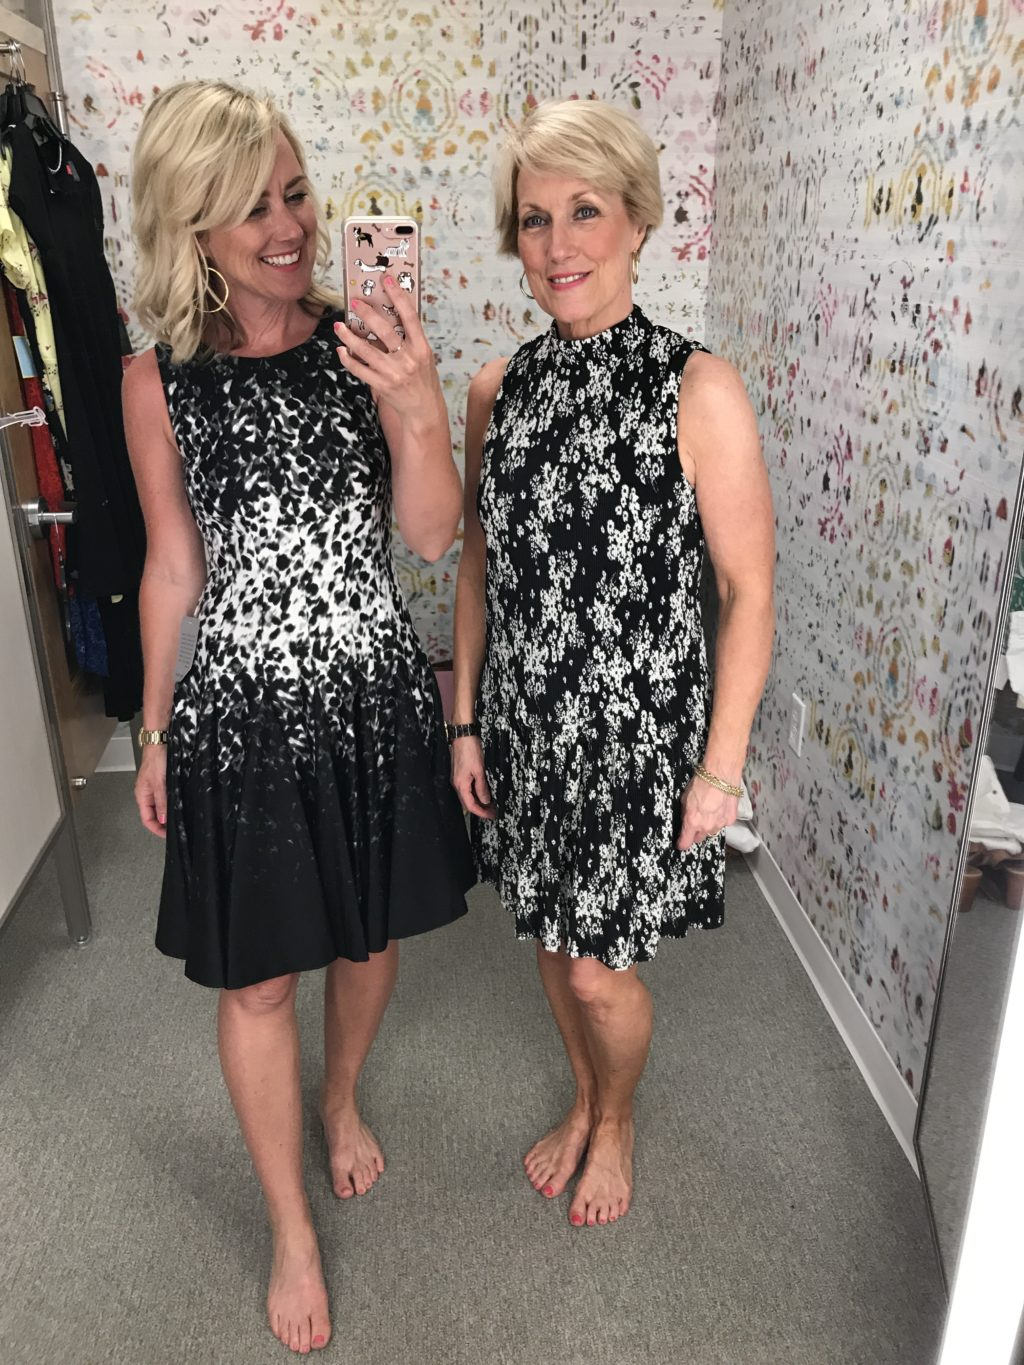 nordstrom black and white dresses